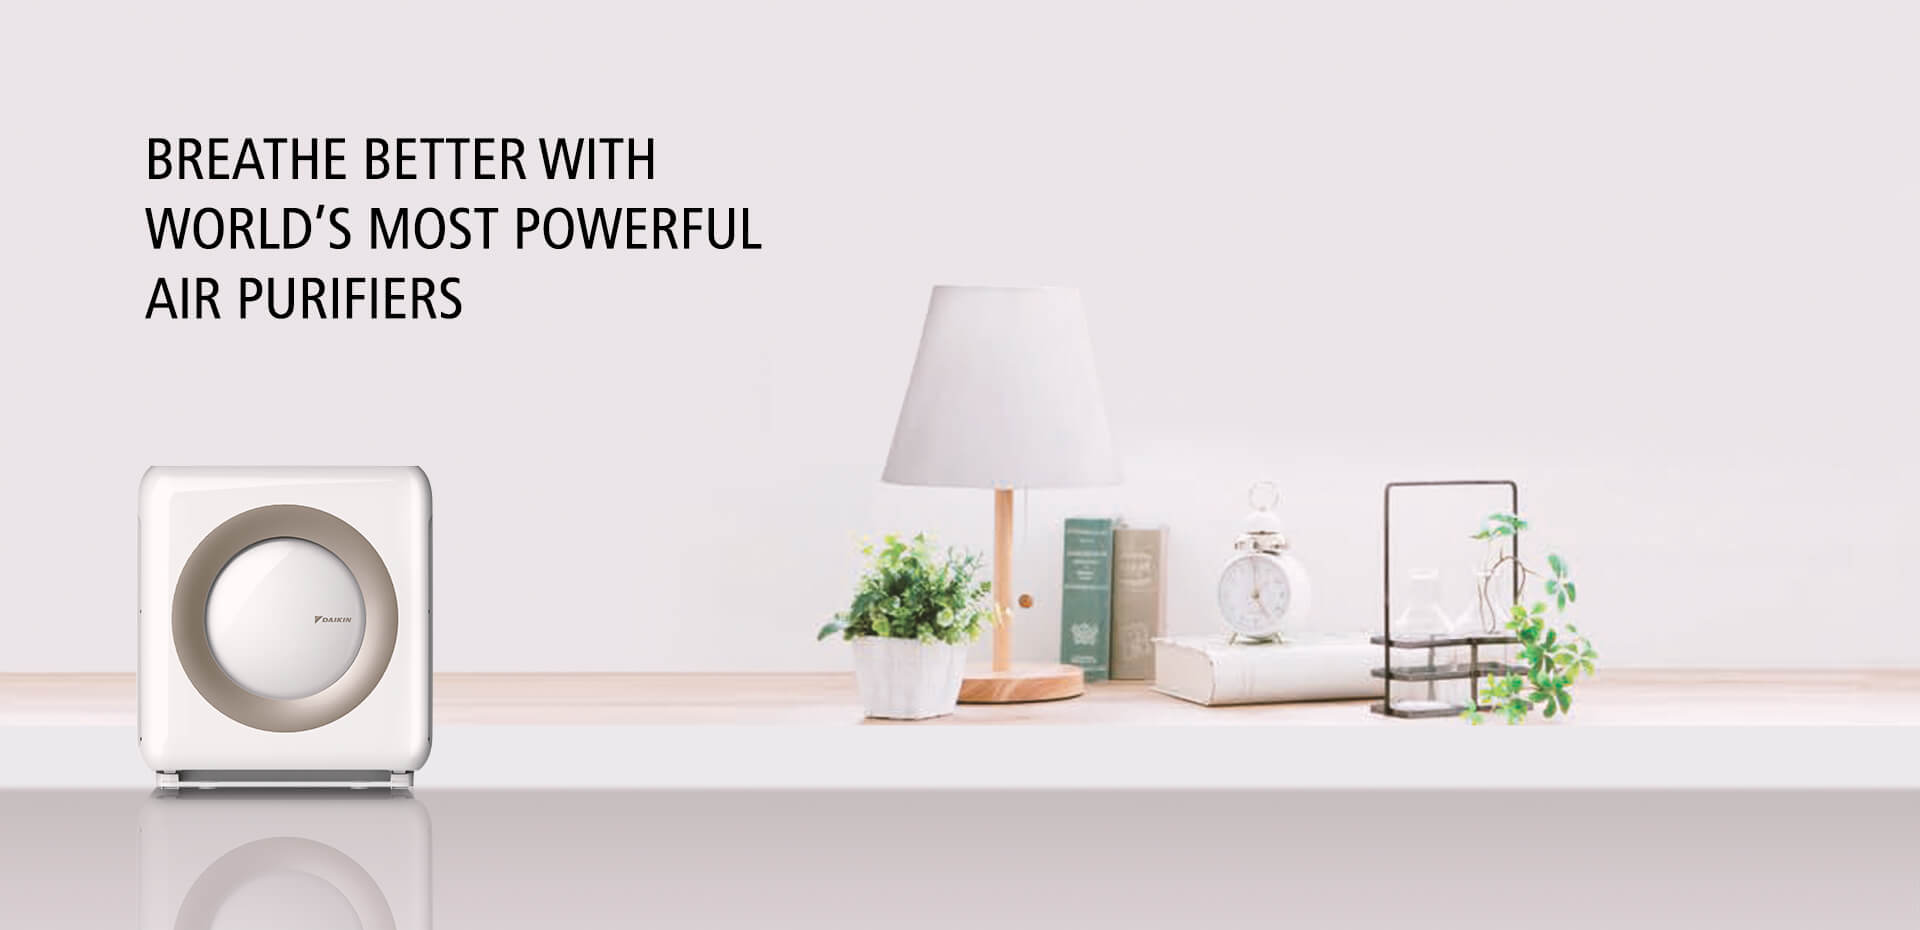 Powerfull Air Purifiers